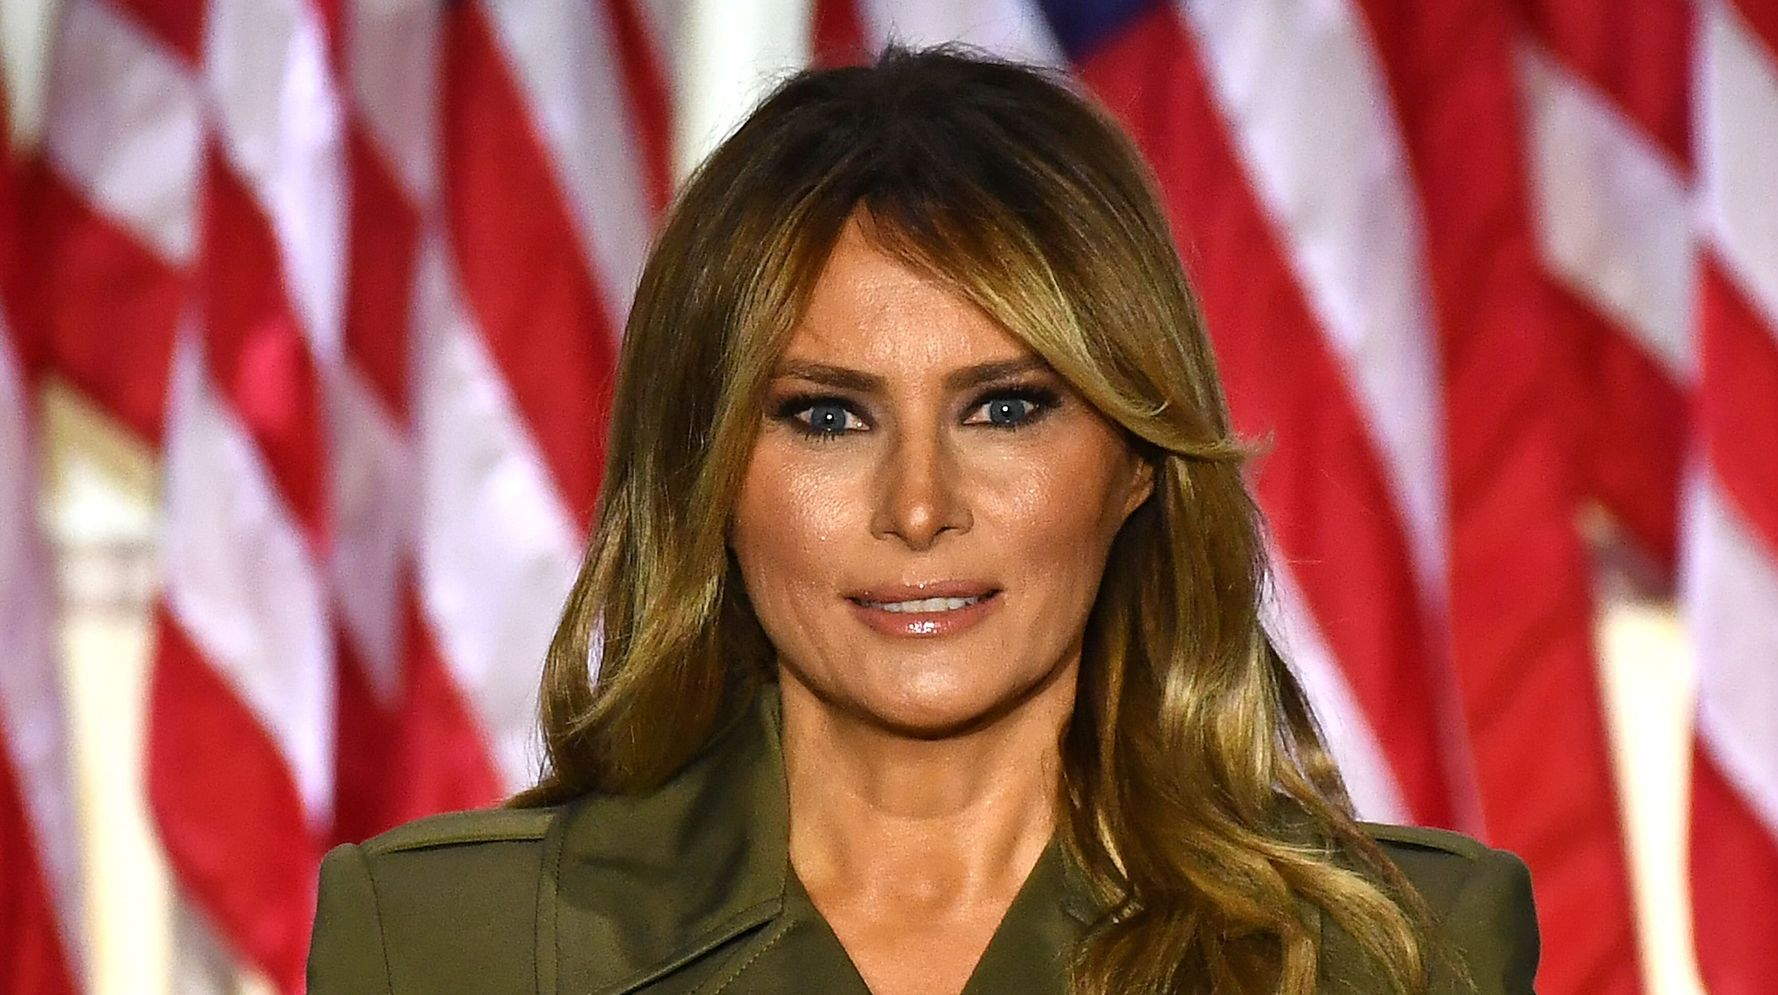 Melania Trump responds to historian 'dishonorable' for criticism of rose garden